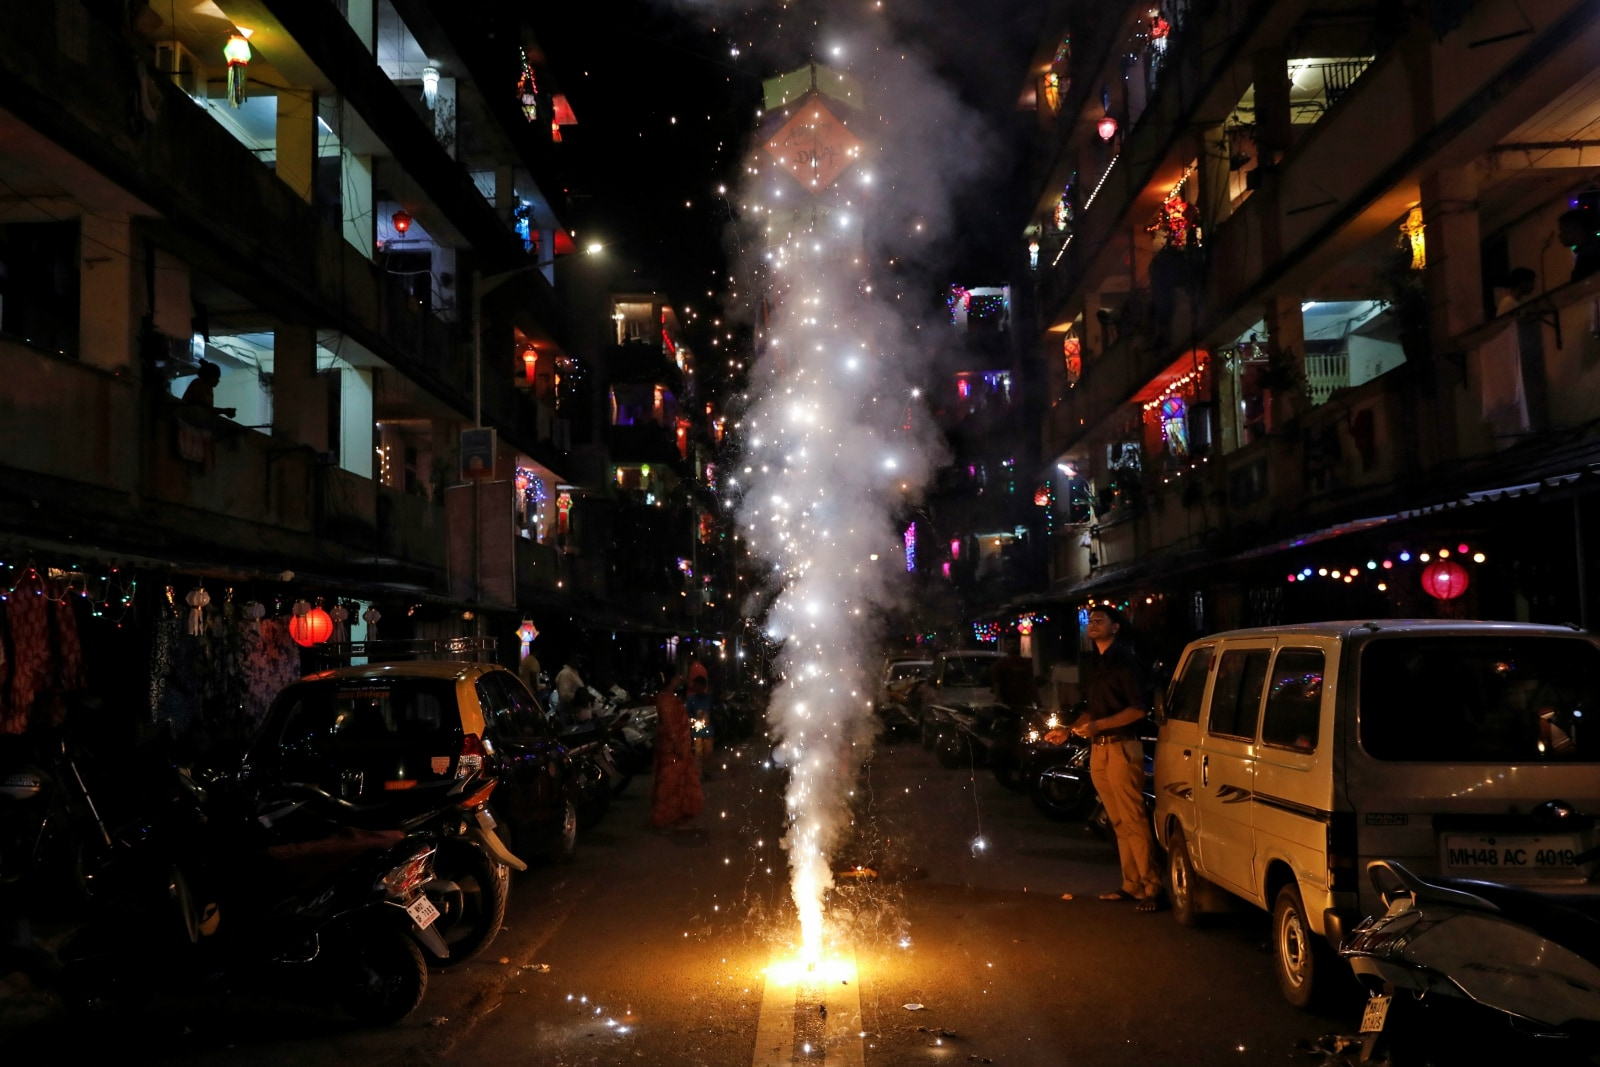 A man lights a firecracker while celebrating the Hindu festival of Diwali, the annual festival of lights in Mumbai, India, November 7, 2018. REUTERS/Danish Siddiqui